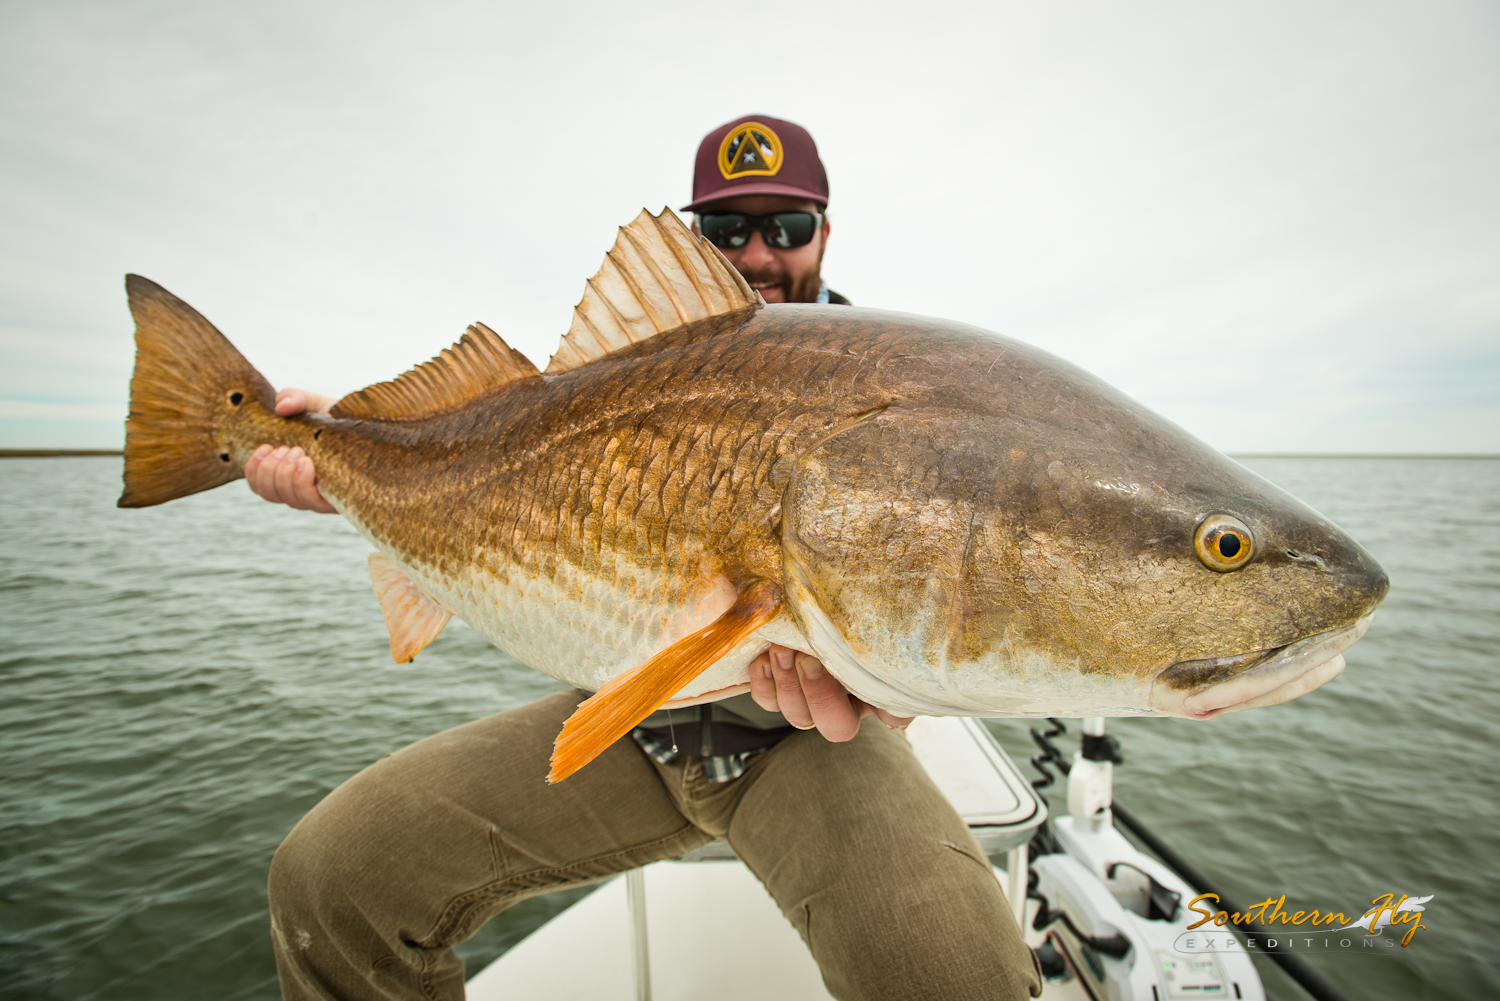 Fly Fishing Guides New Orleans Southern Fly Expeditions